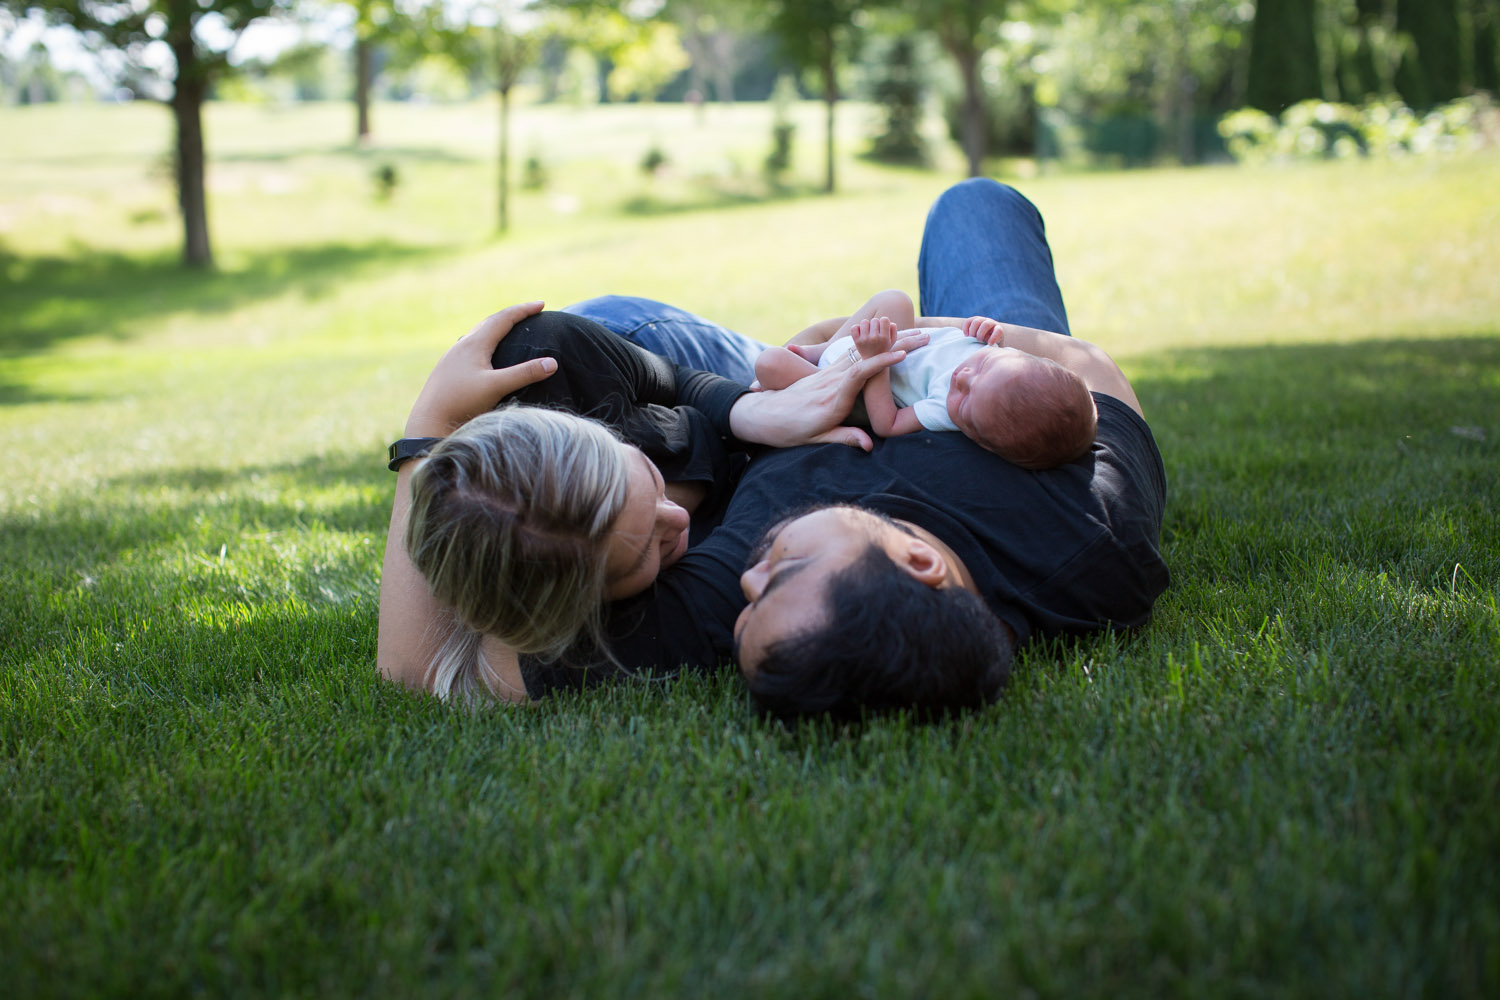 04-minnesota-in-home-newborn-lifestyle-photographer-new-parents-mom-dad-baby-boy-outside-green-grass-mahonen-photography.jpg